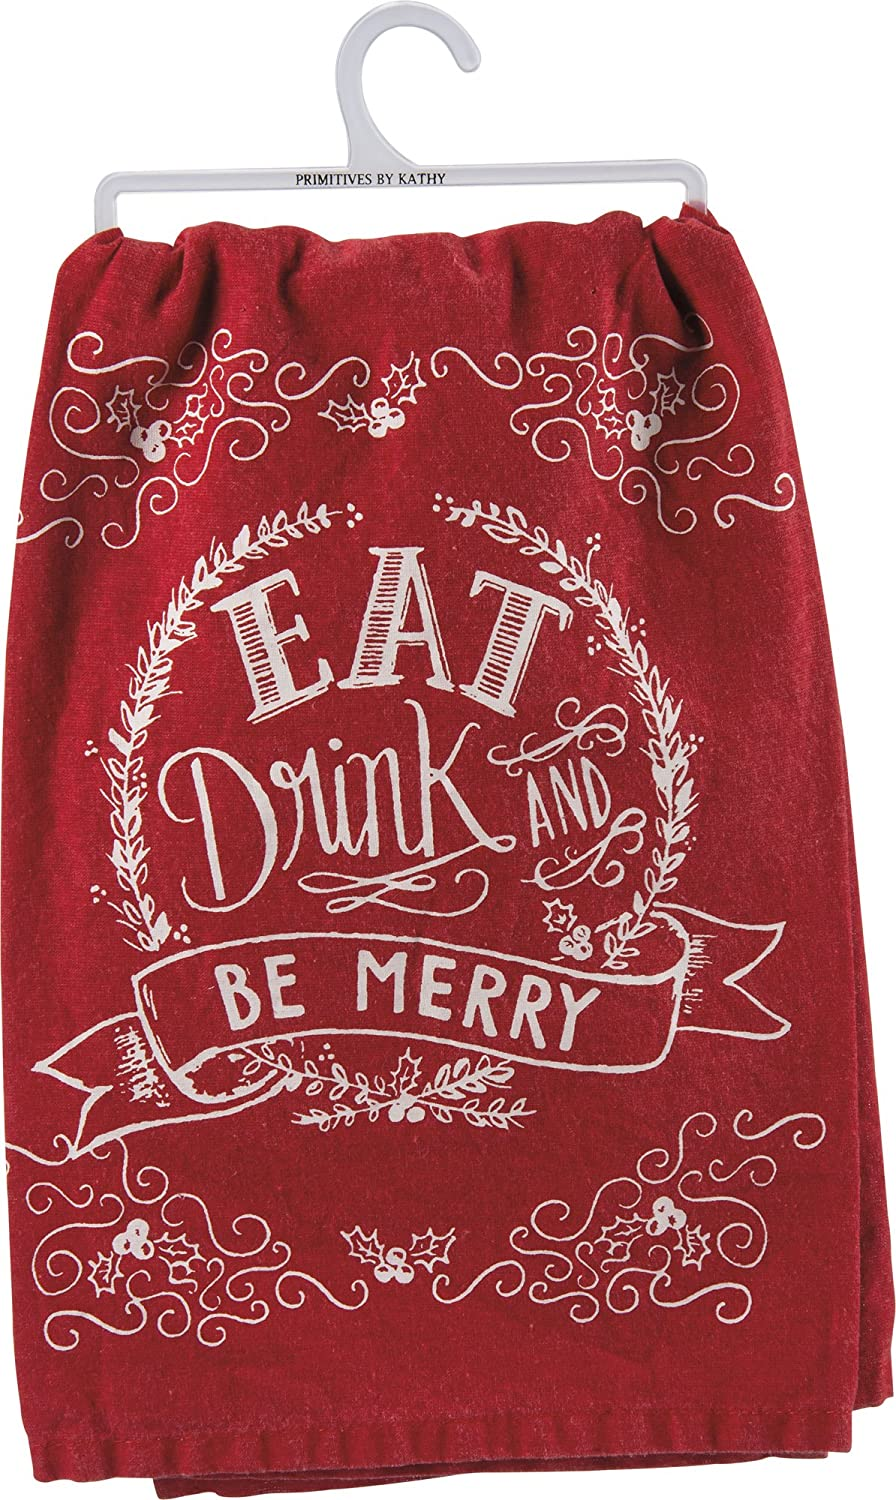 """Primitives By Kathy Kitchen Towel - """"Eat Drink and Be Merry"""""""